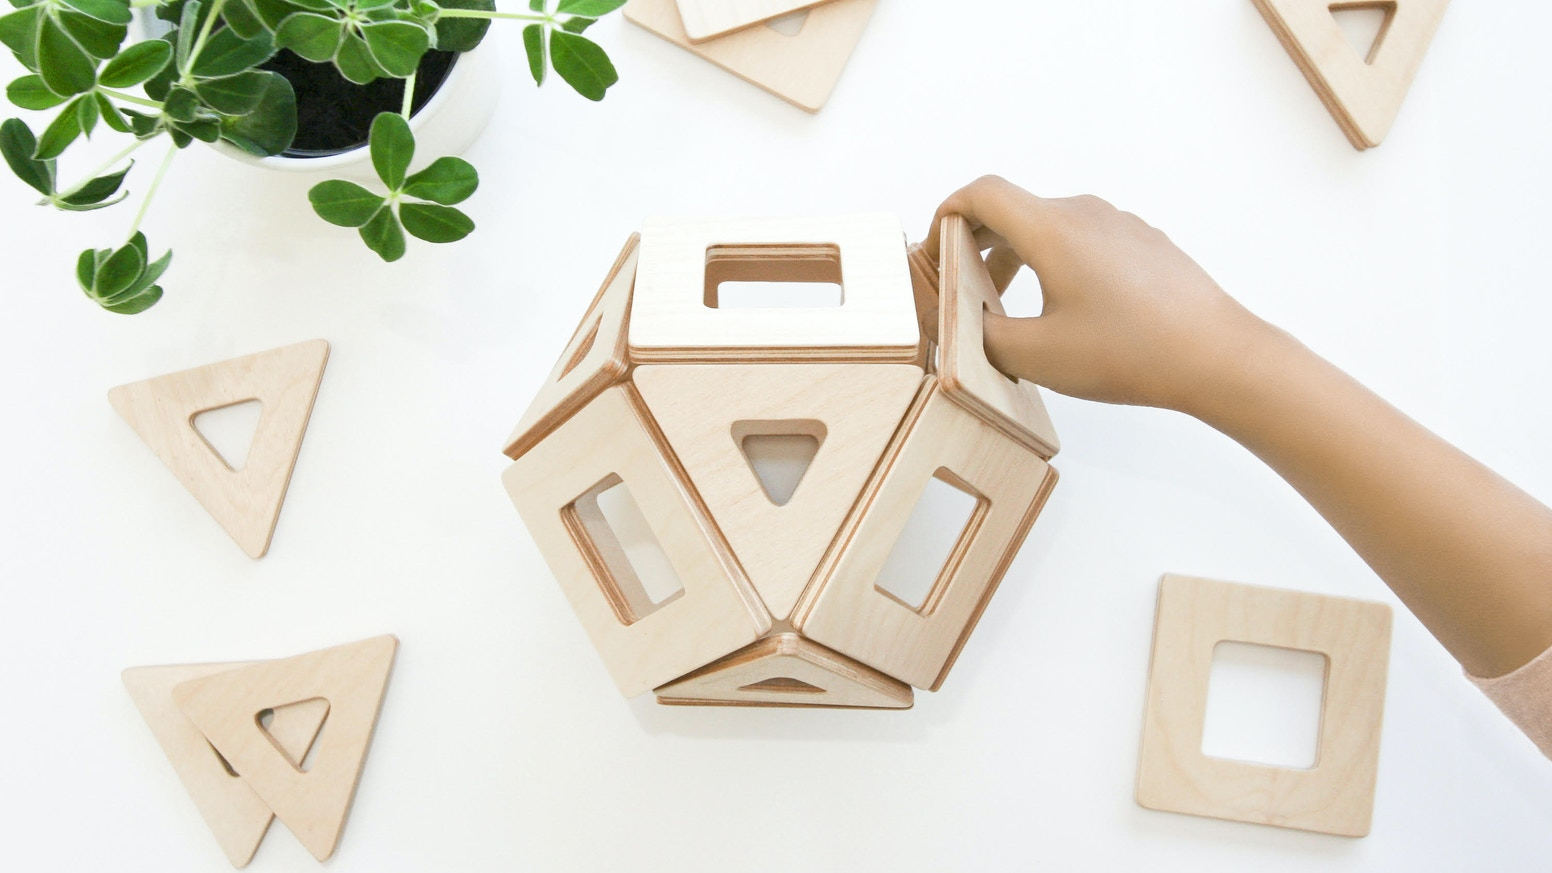 Encourage creativity and spatial thinking with toys made from sustainably harvested wood.